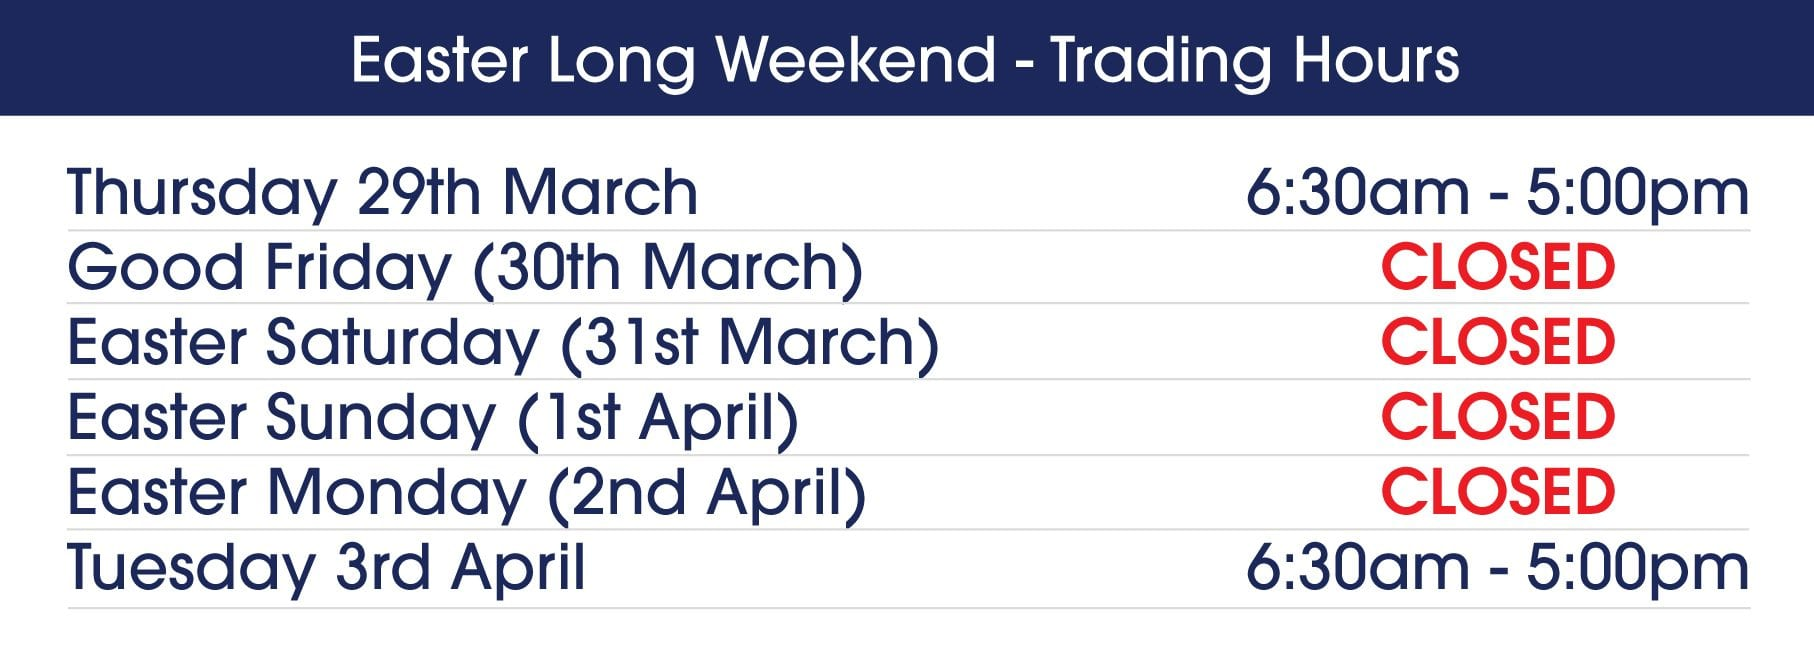 easter-trading-hours-2018